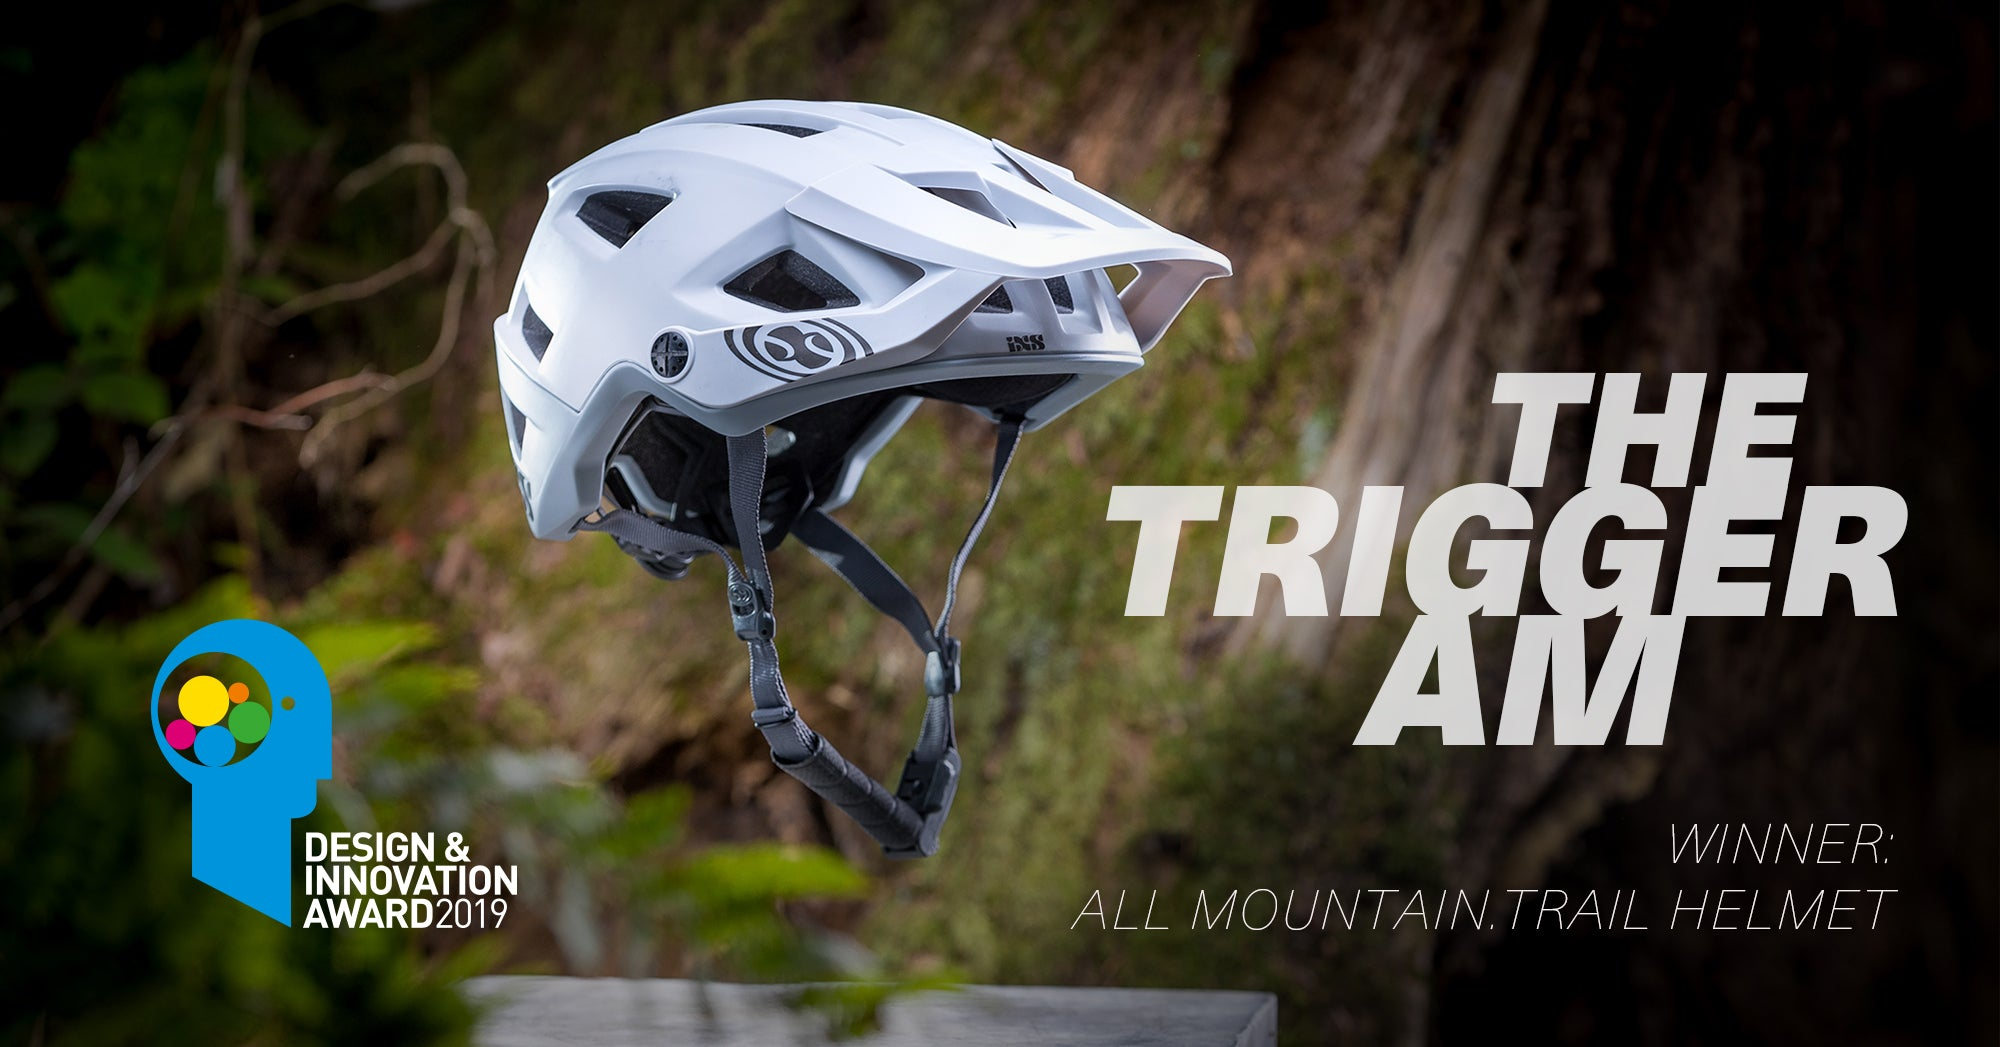 award winning trail all mountain helmet